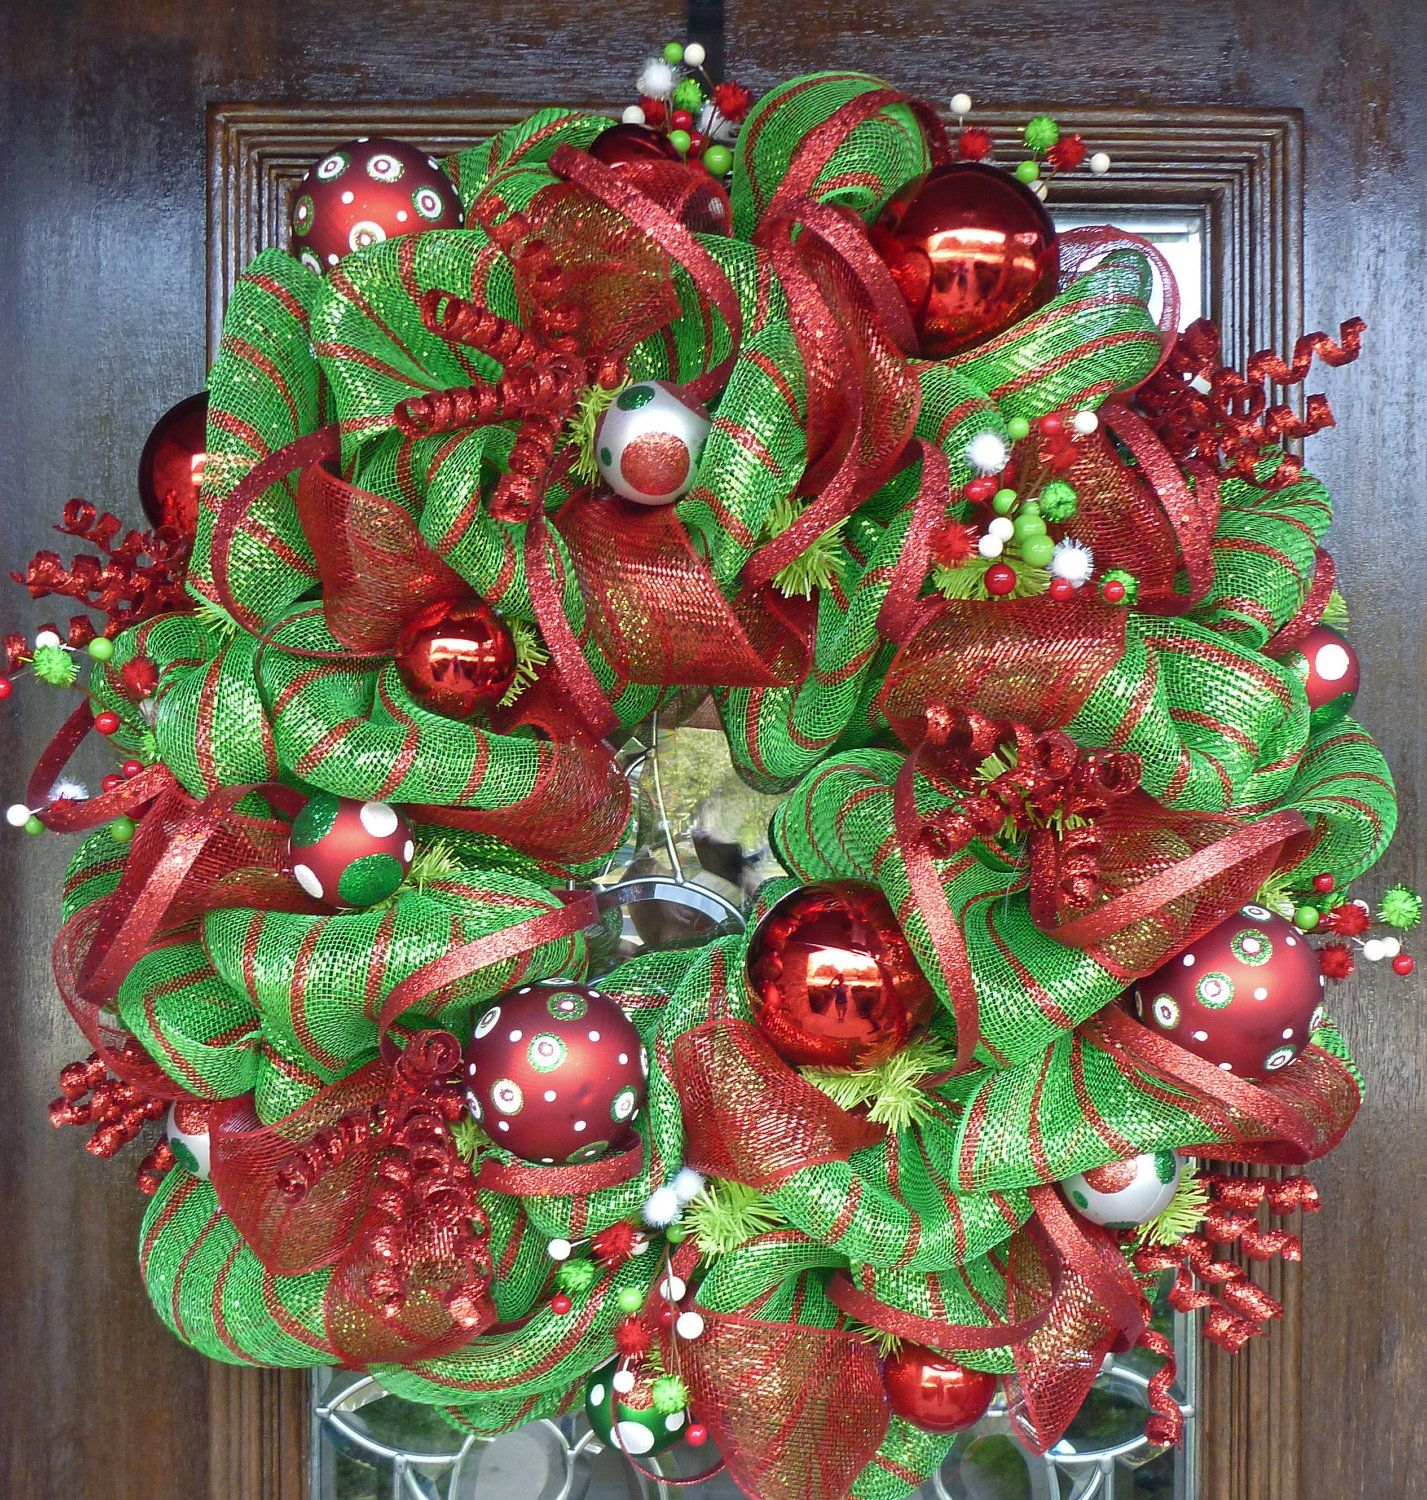 Deco mesh wreath ideas bing images wreaths for all for Latest xmas decorations